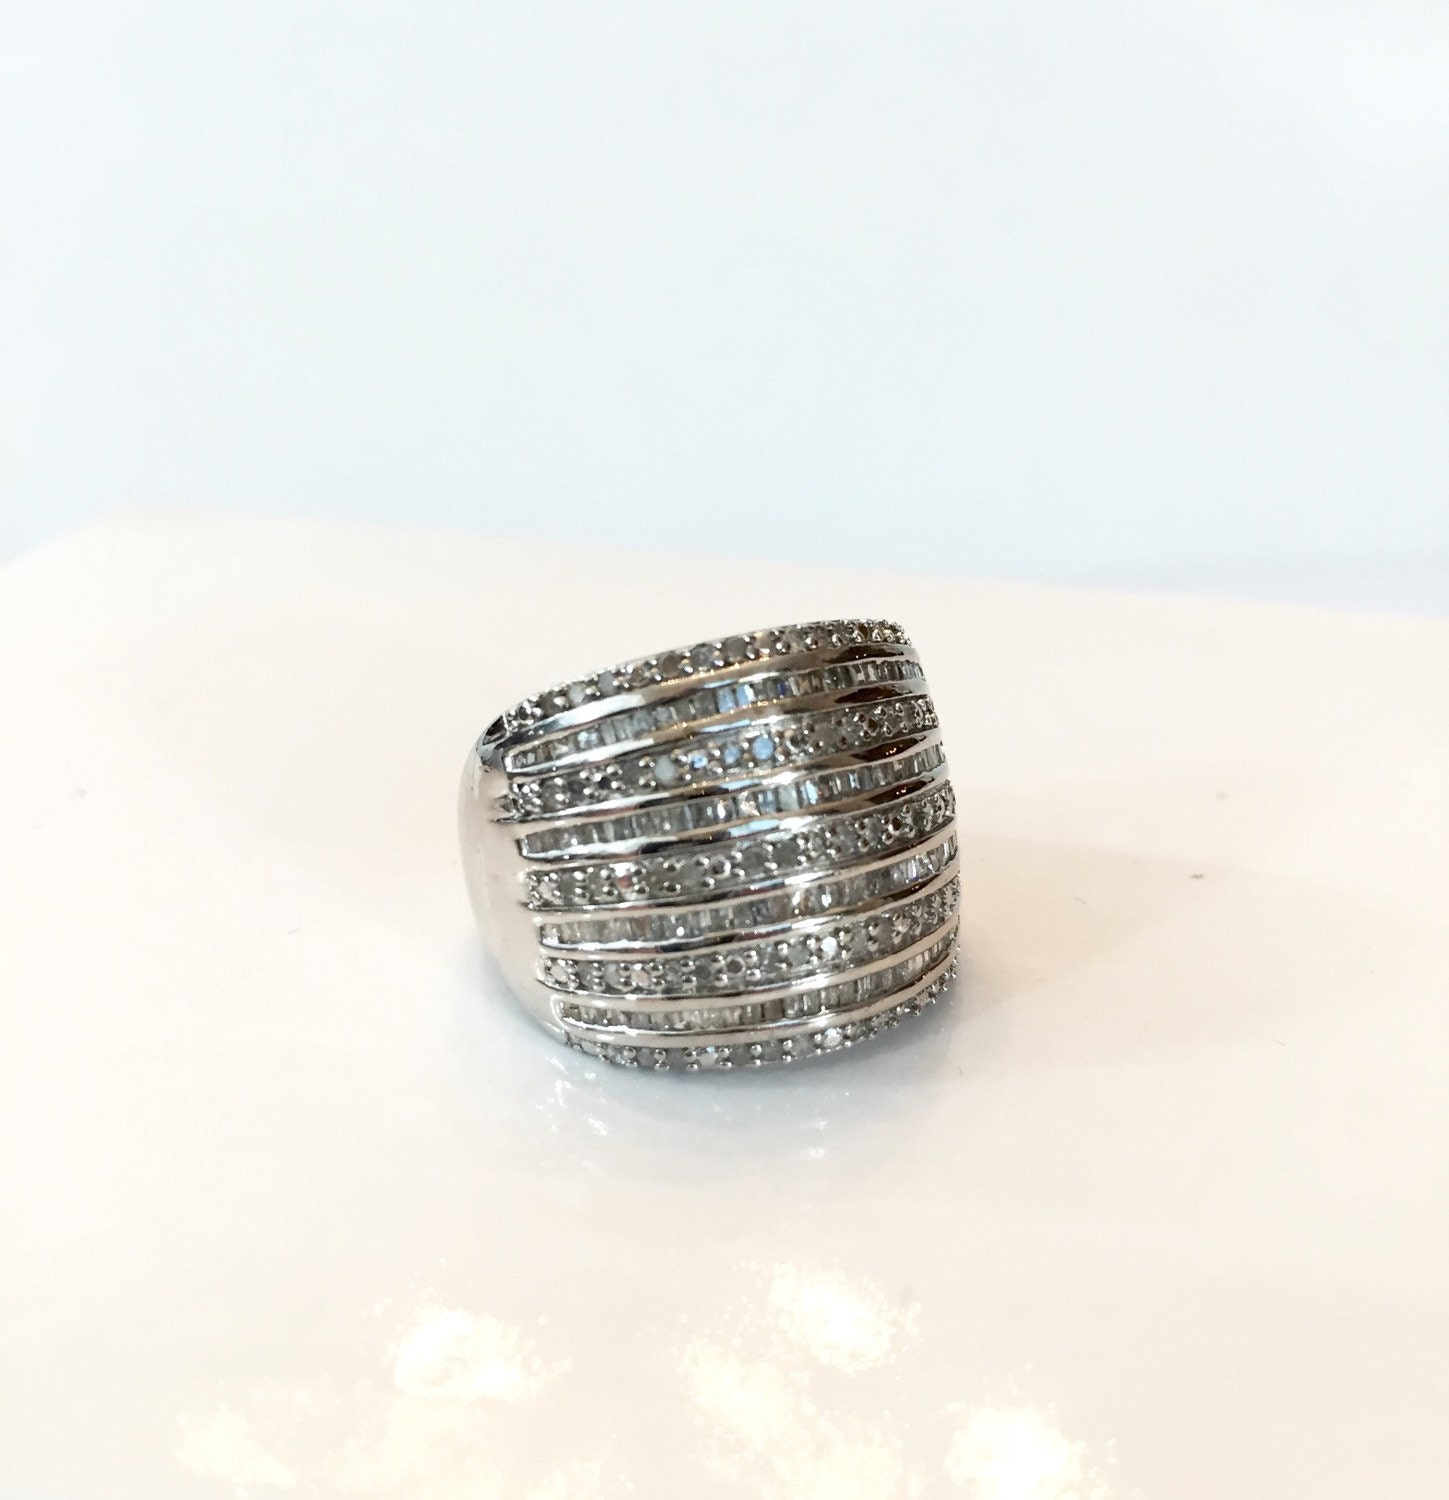 1 ct ring sterling silver wide band wedding bridal